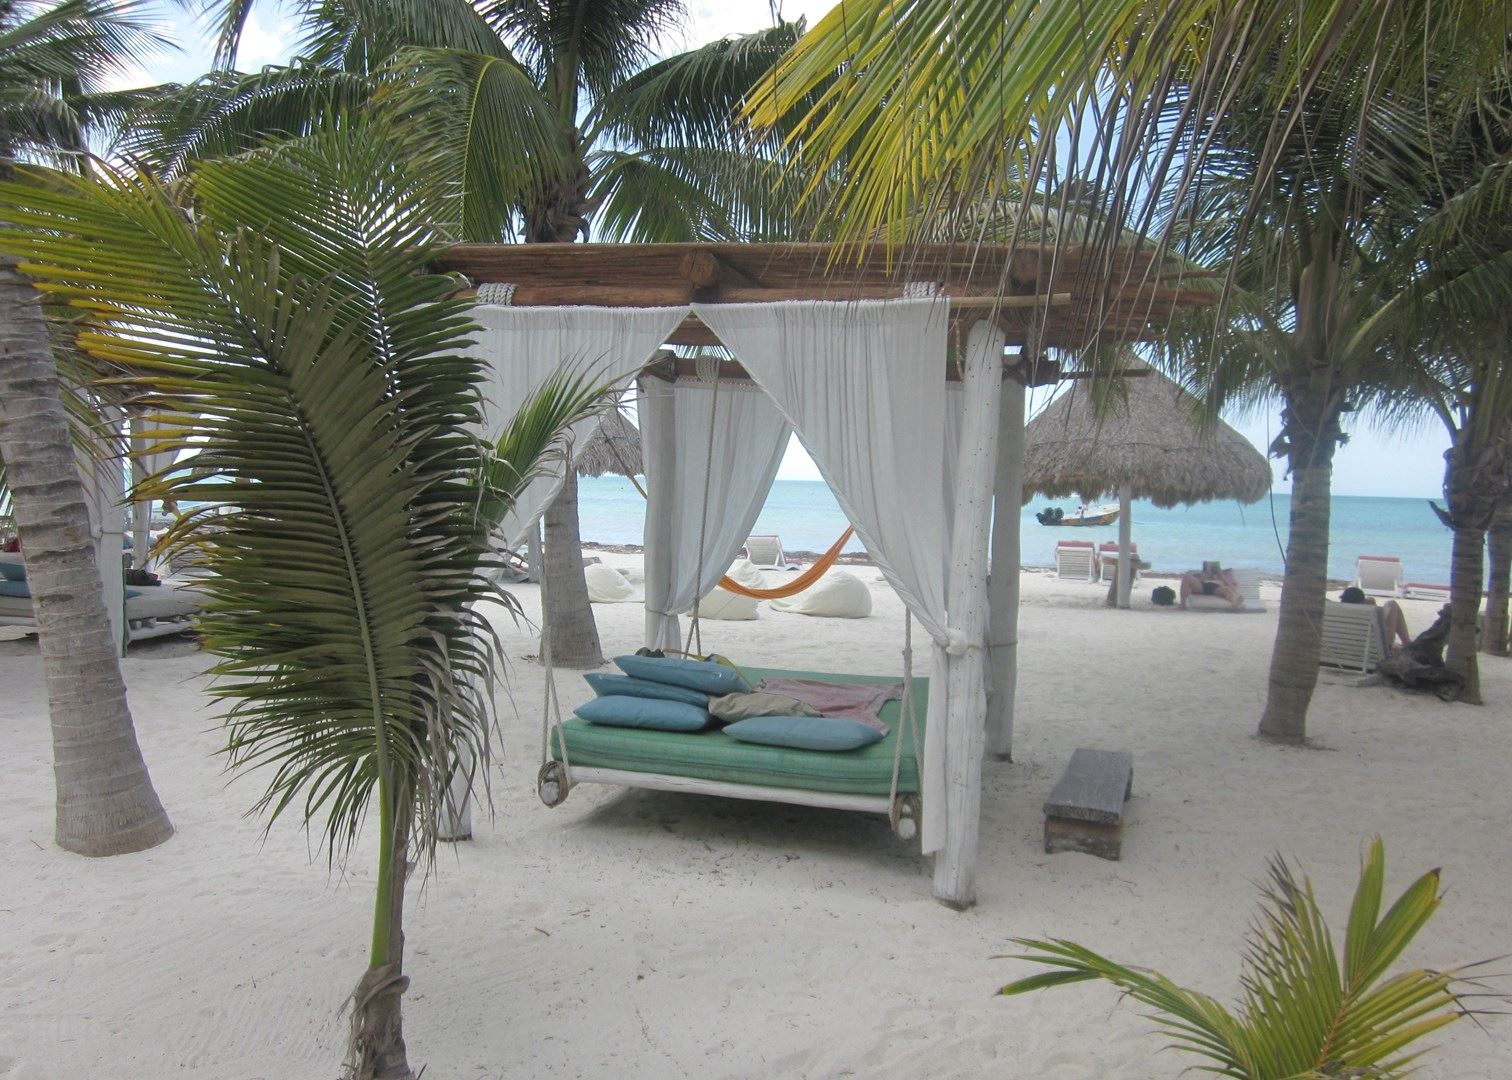 Casa las tortugas hotels in isla holbox audley travel - Holbox hotel casa las tortugas ...